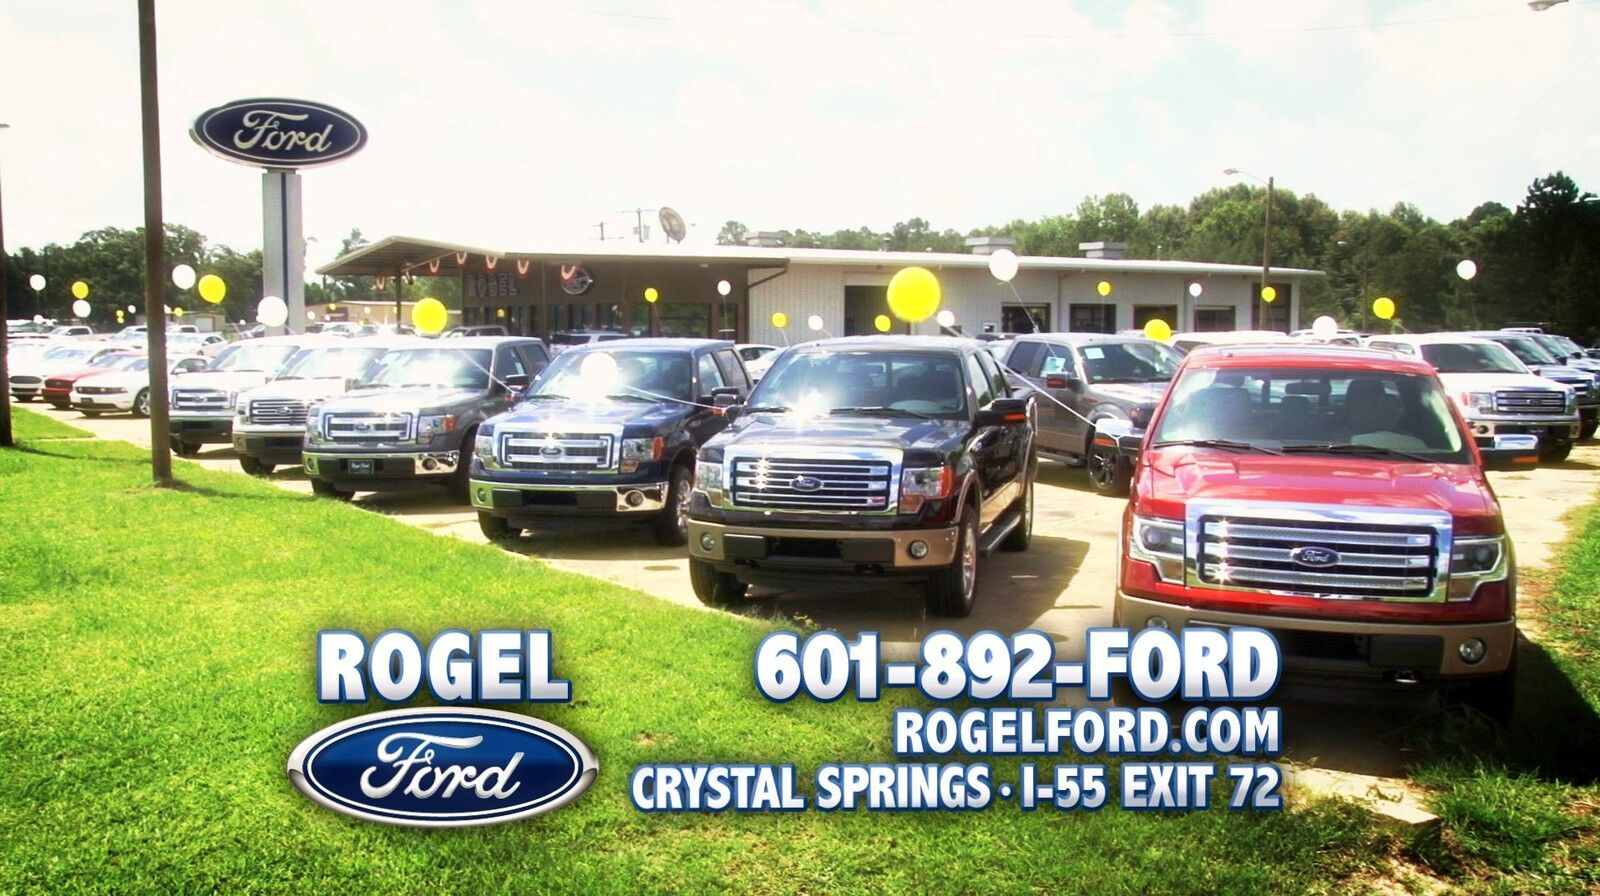 Rogel Ford Automotive & Parts Sales